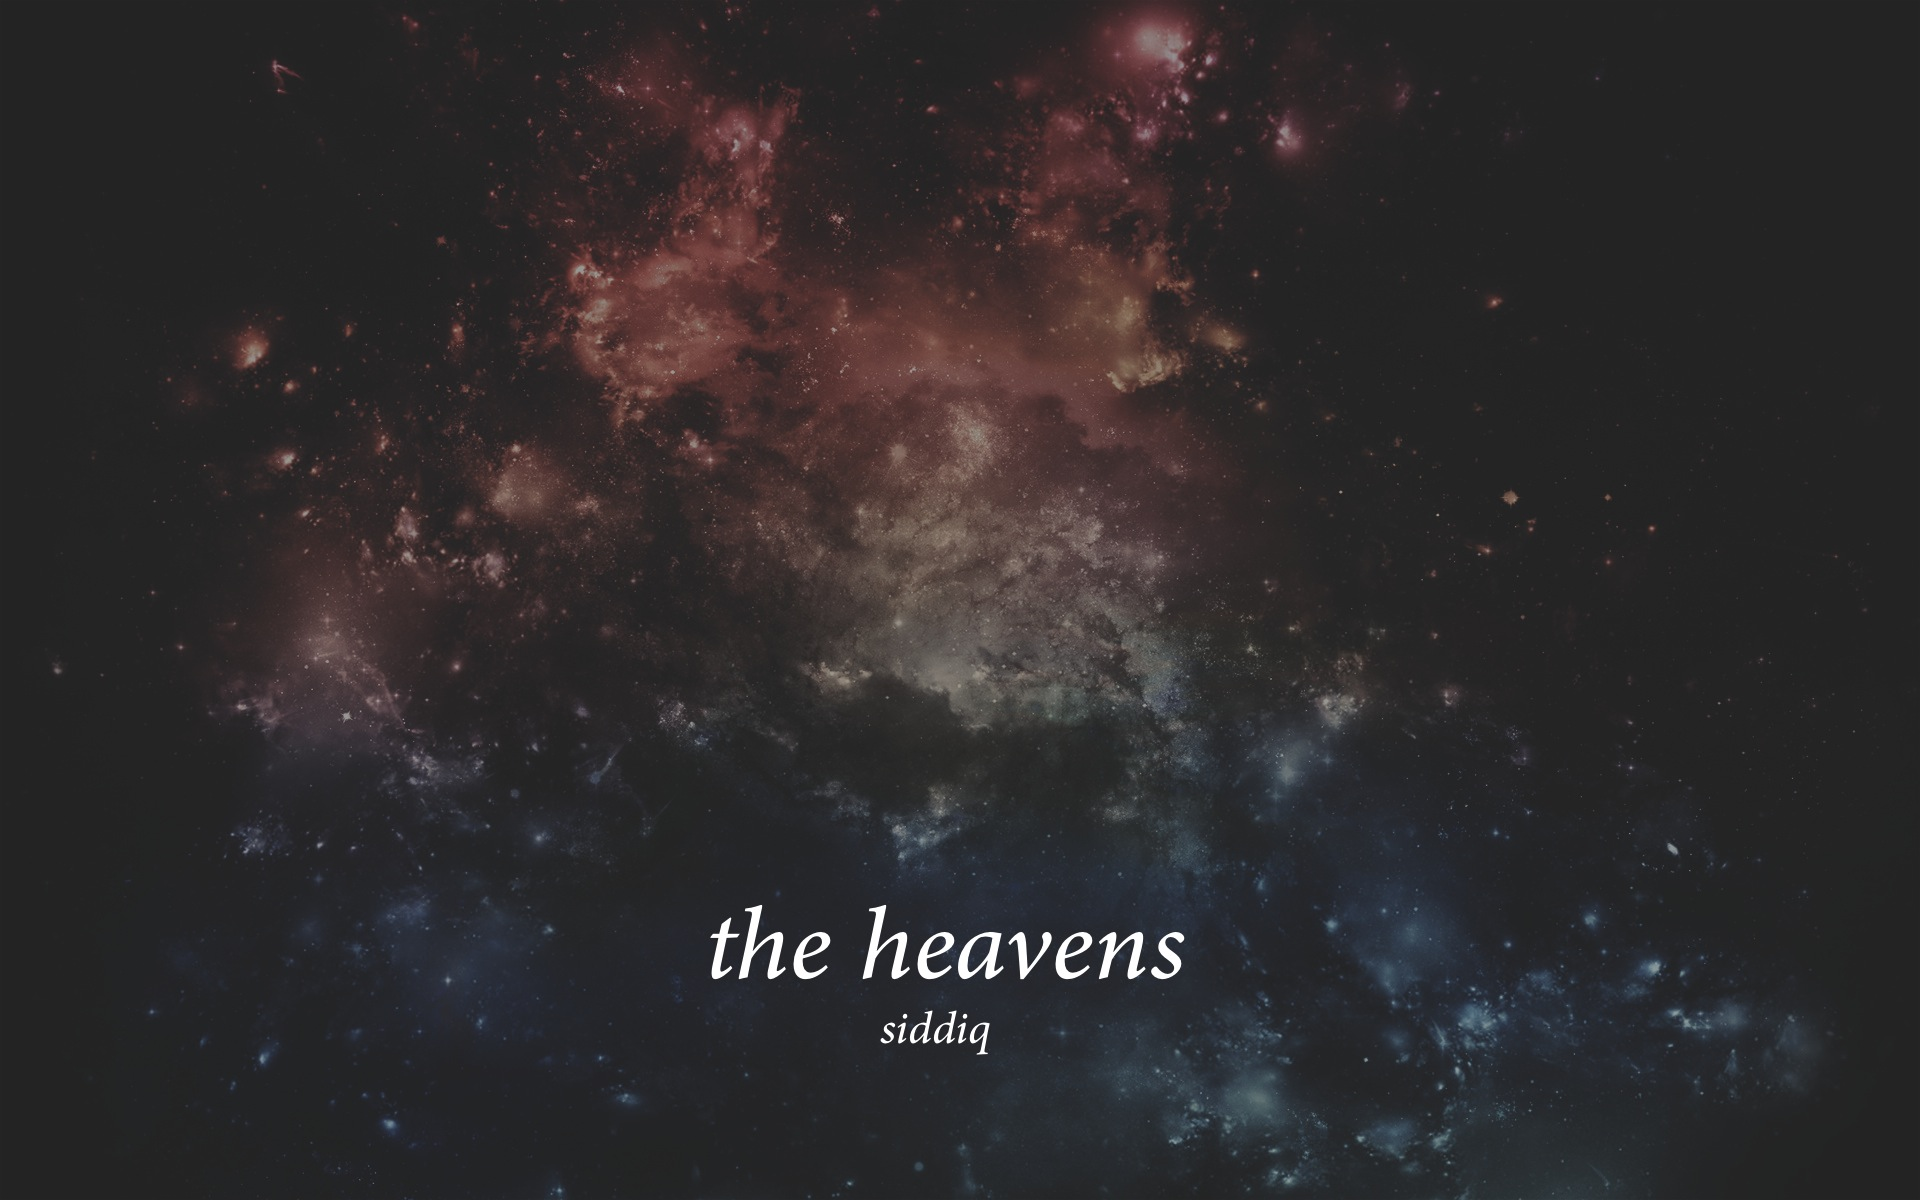 Siddiq – The Heavens